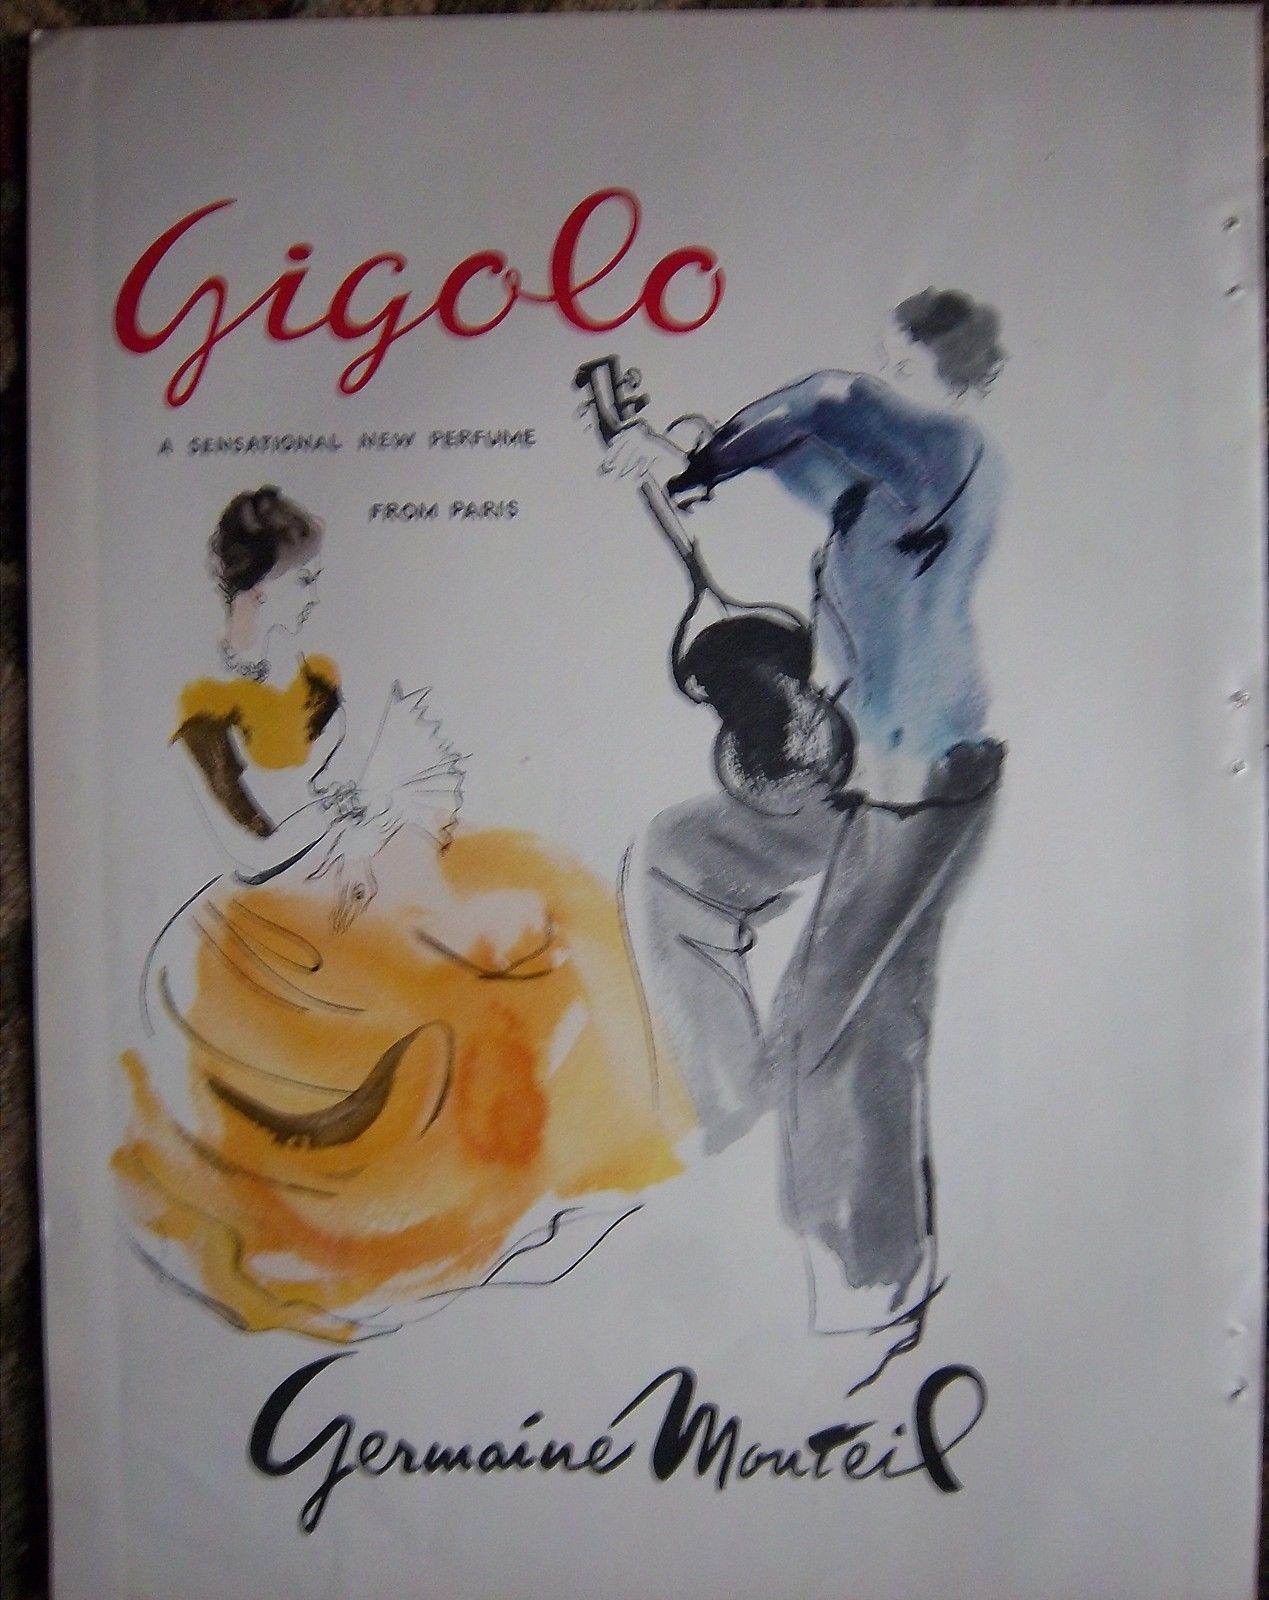 1951 Germaine Monteil Gigolo Perfume from Paris Color Ad | eBay